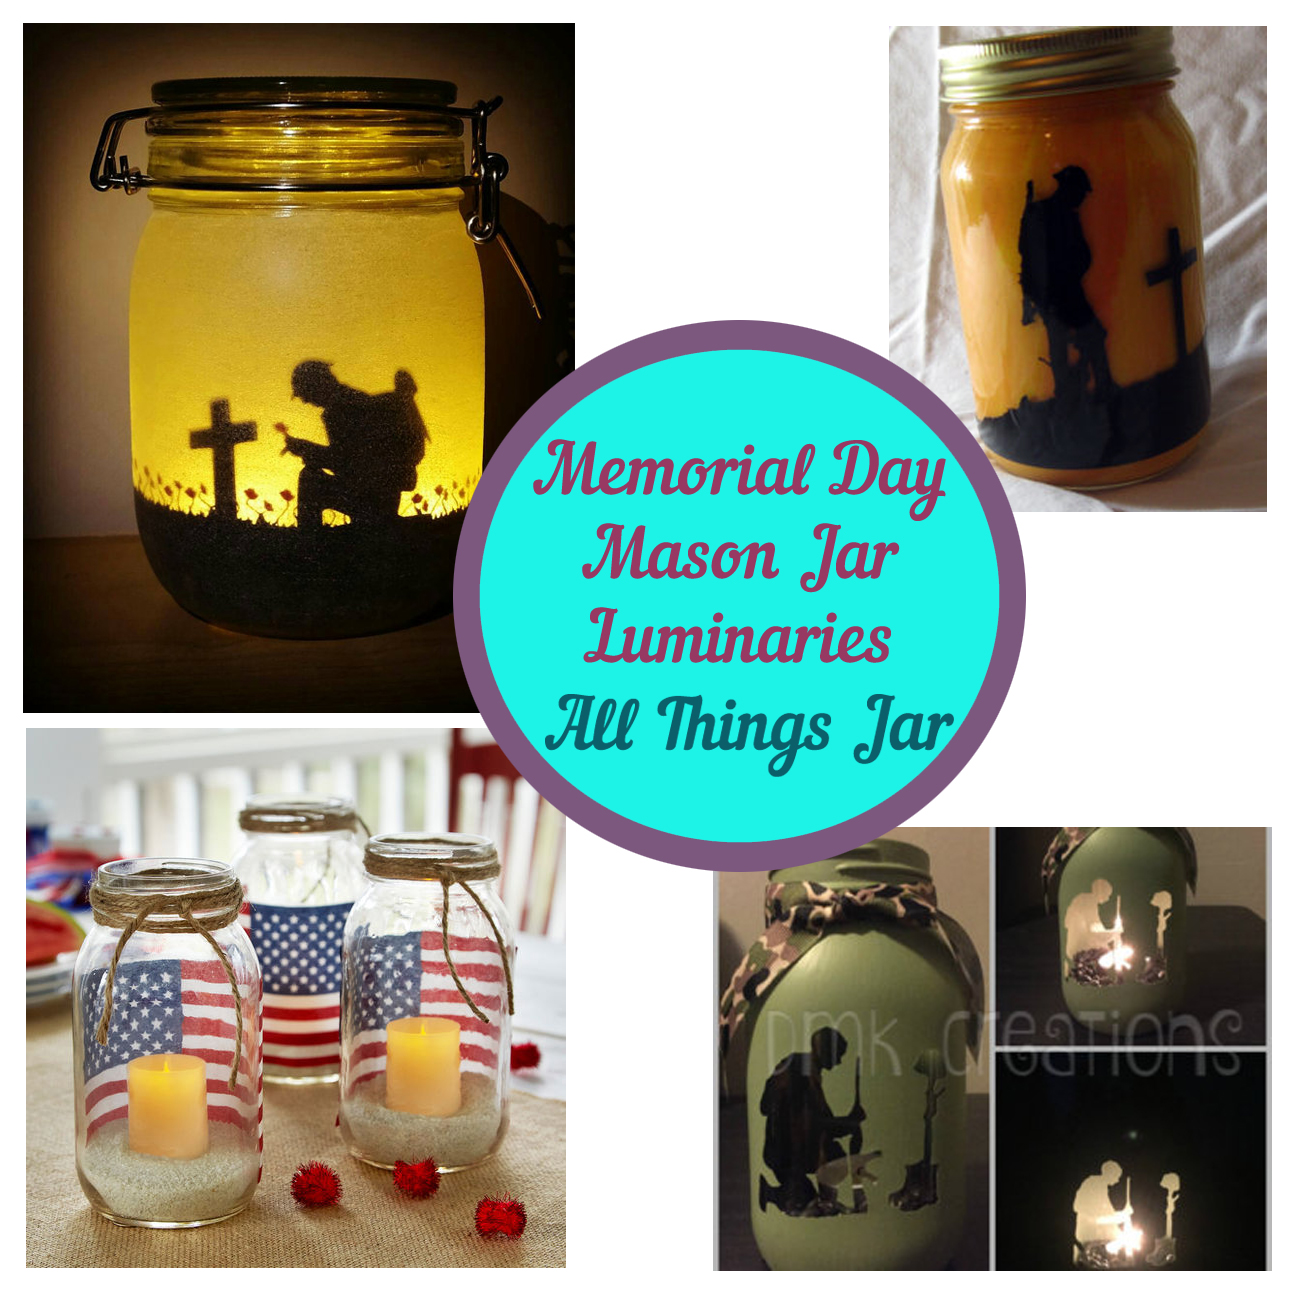 Memorial Day Mason Jar Luminaries